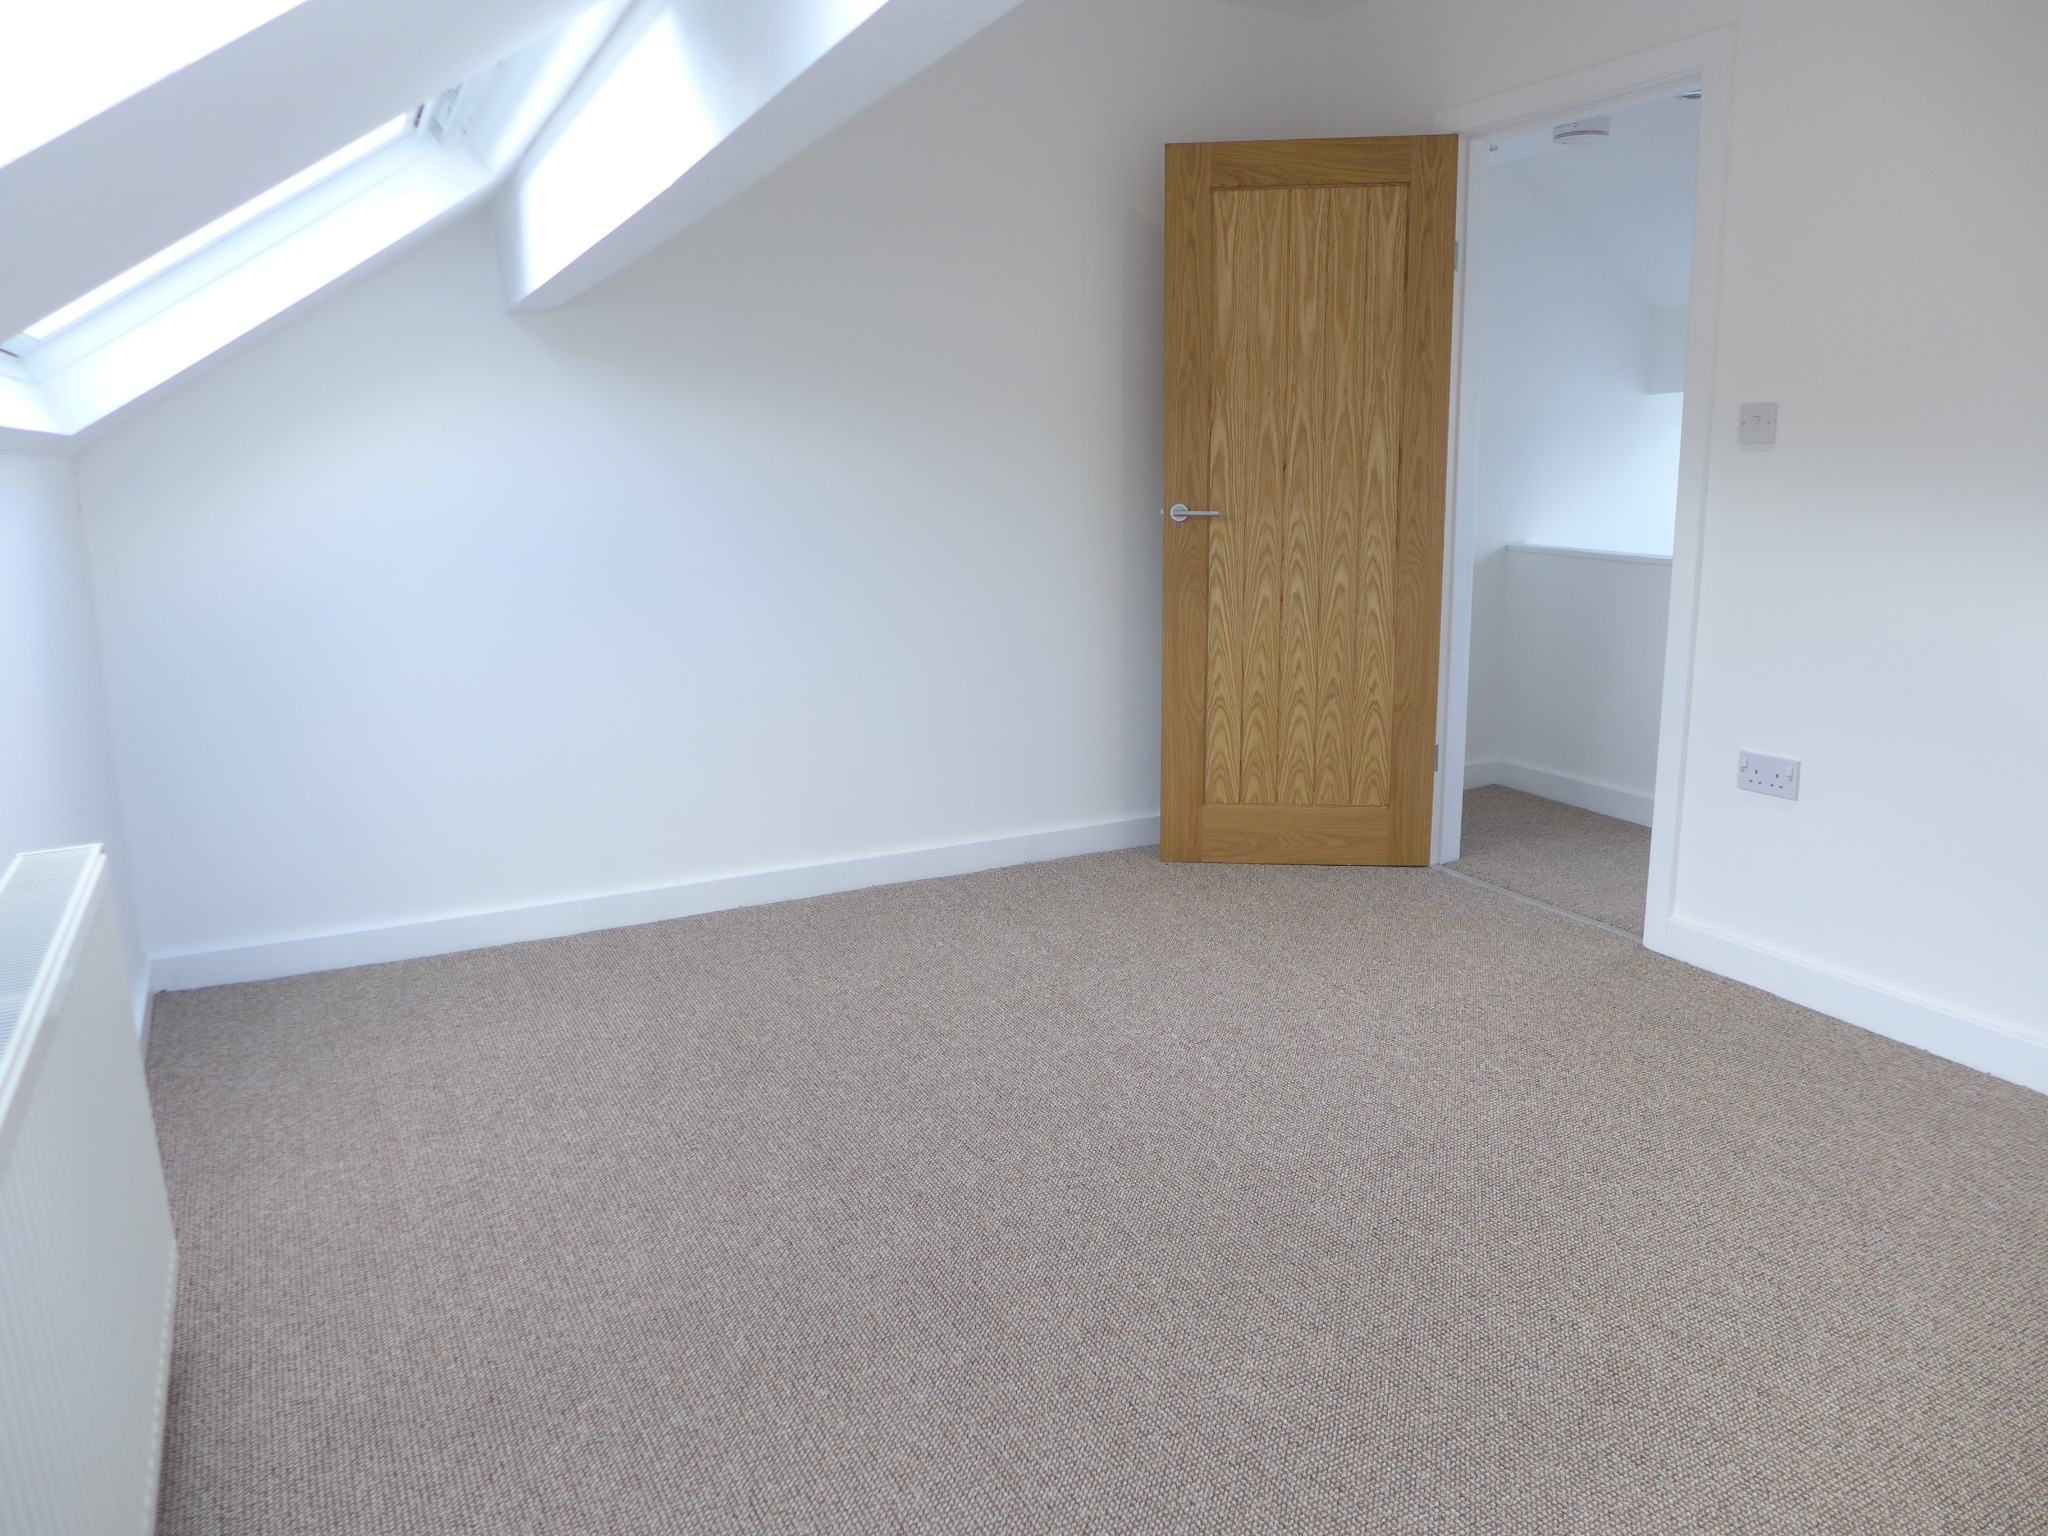 3 bedroom mid terraced house For Sale in Todmorden - Photograph 14.